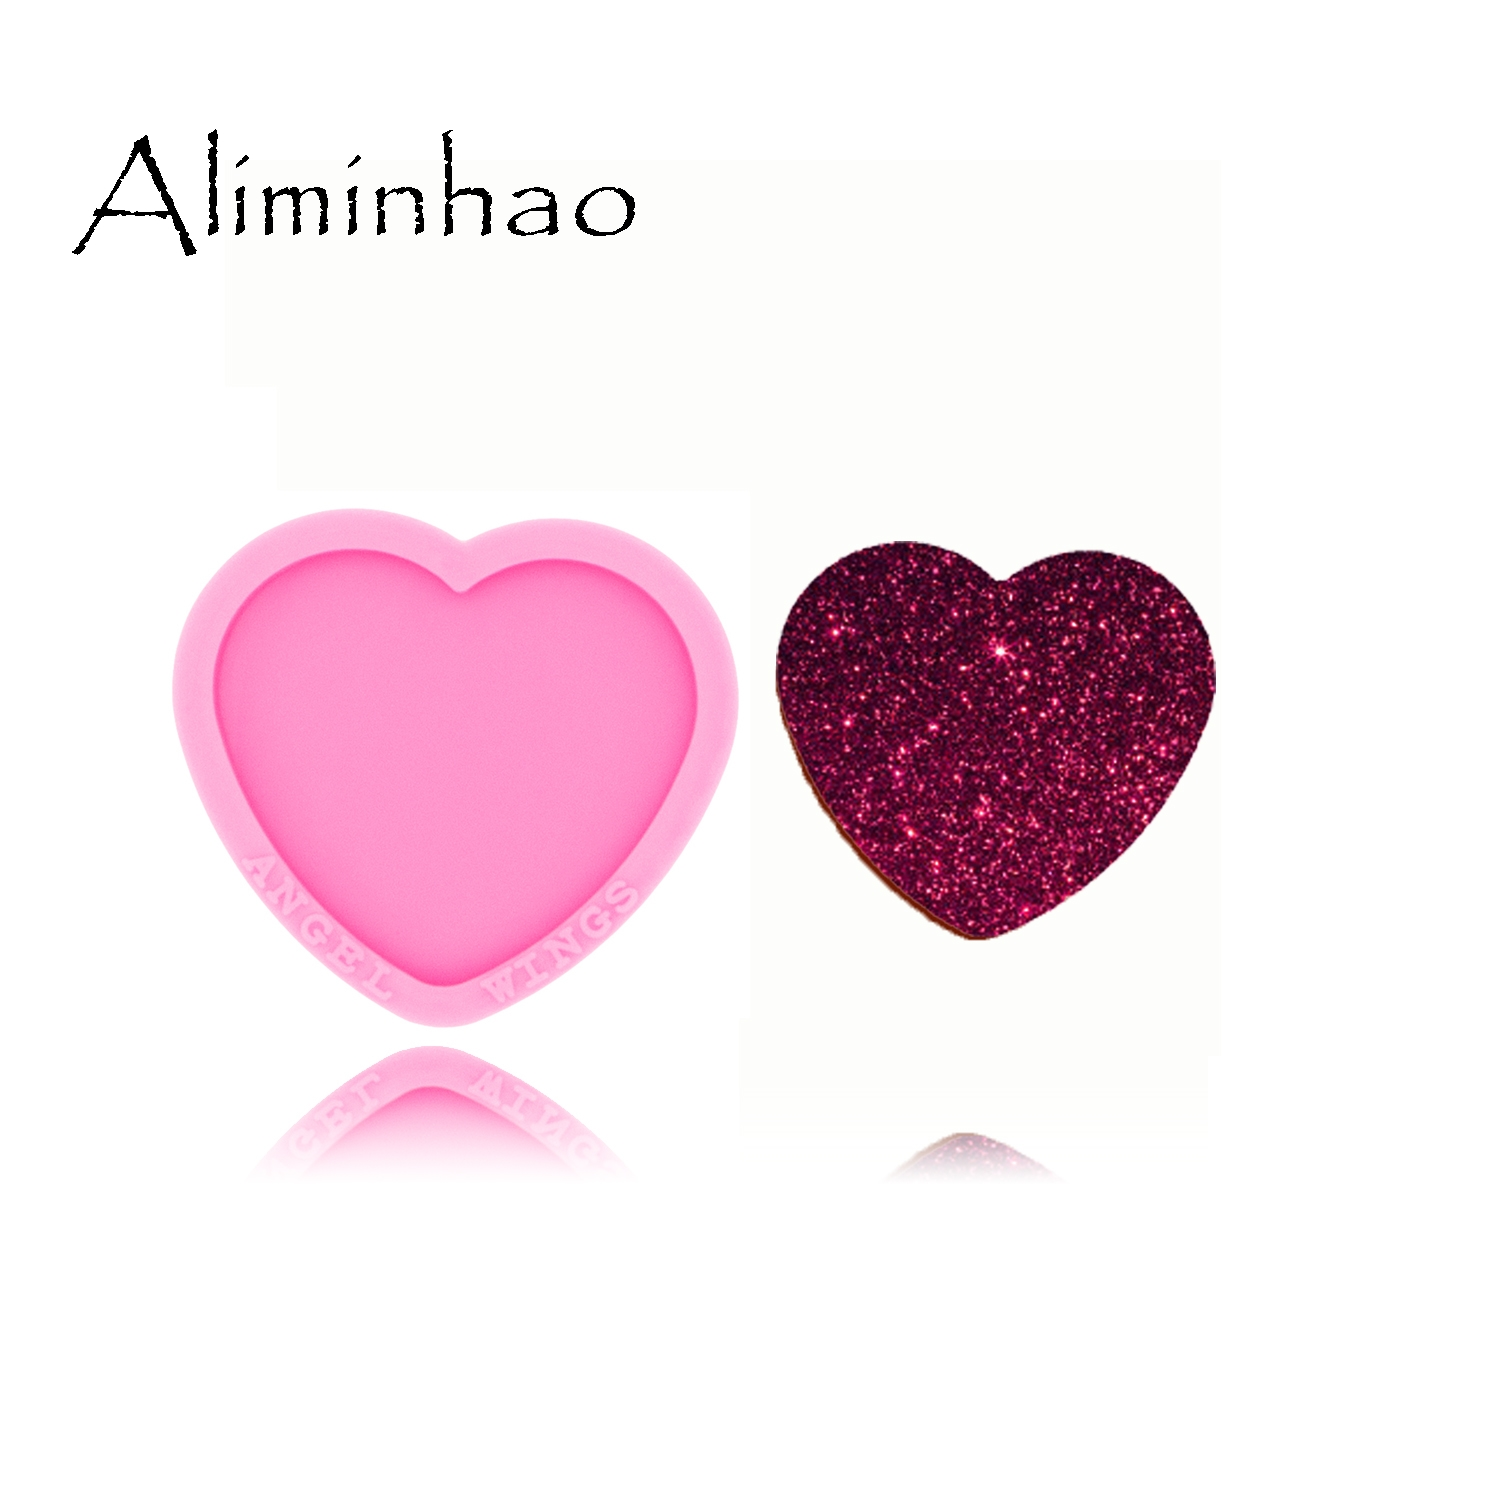 DY0450 Shiny Glossy Heart Shape Mould Crafting Love Silicone Epoxy Resin Mold Badge Reel As Well